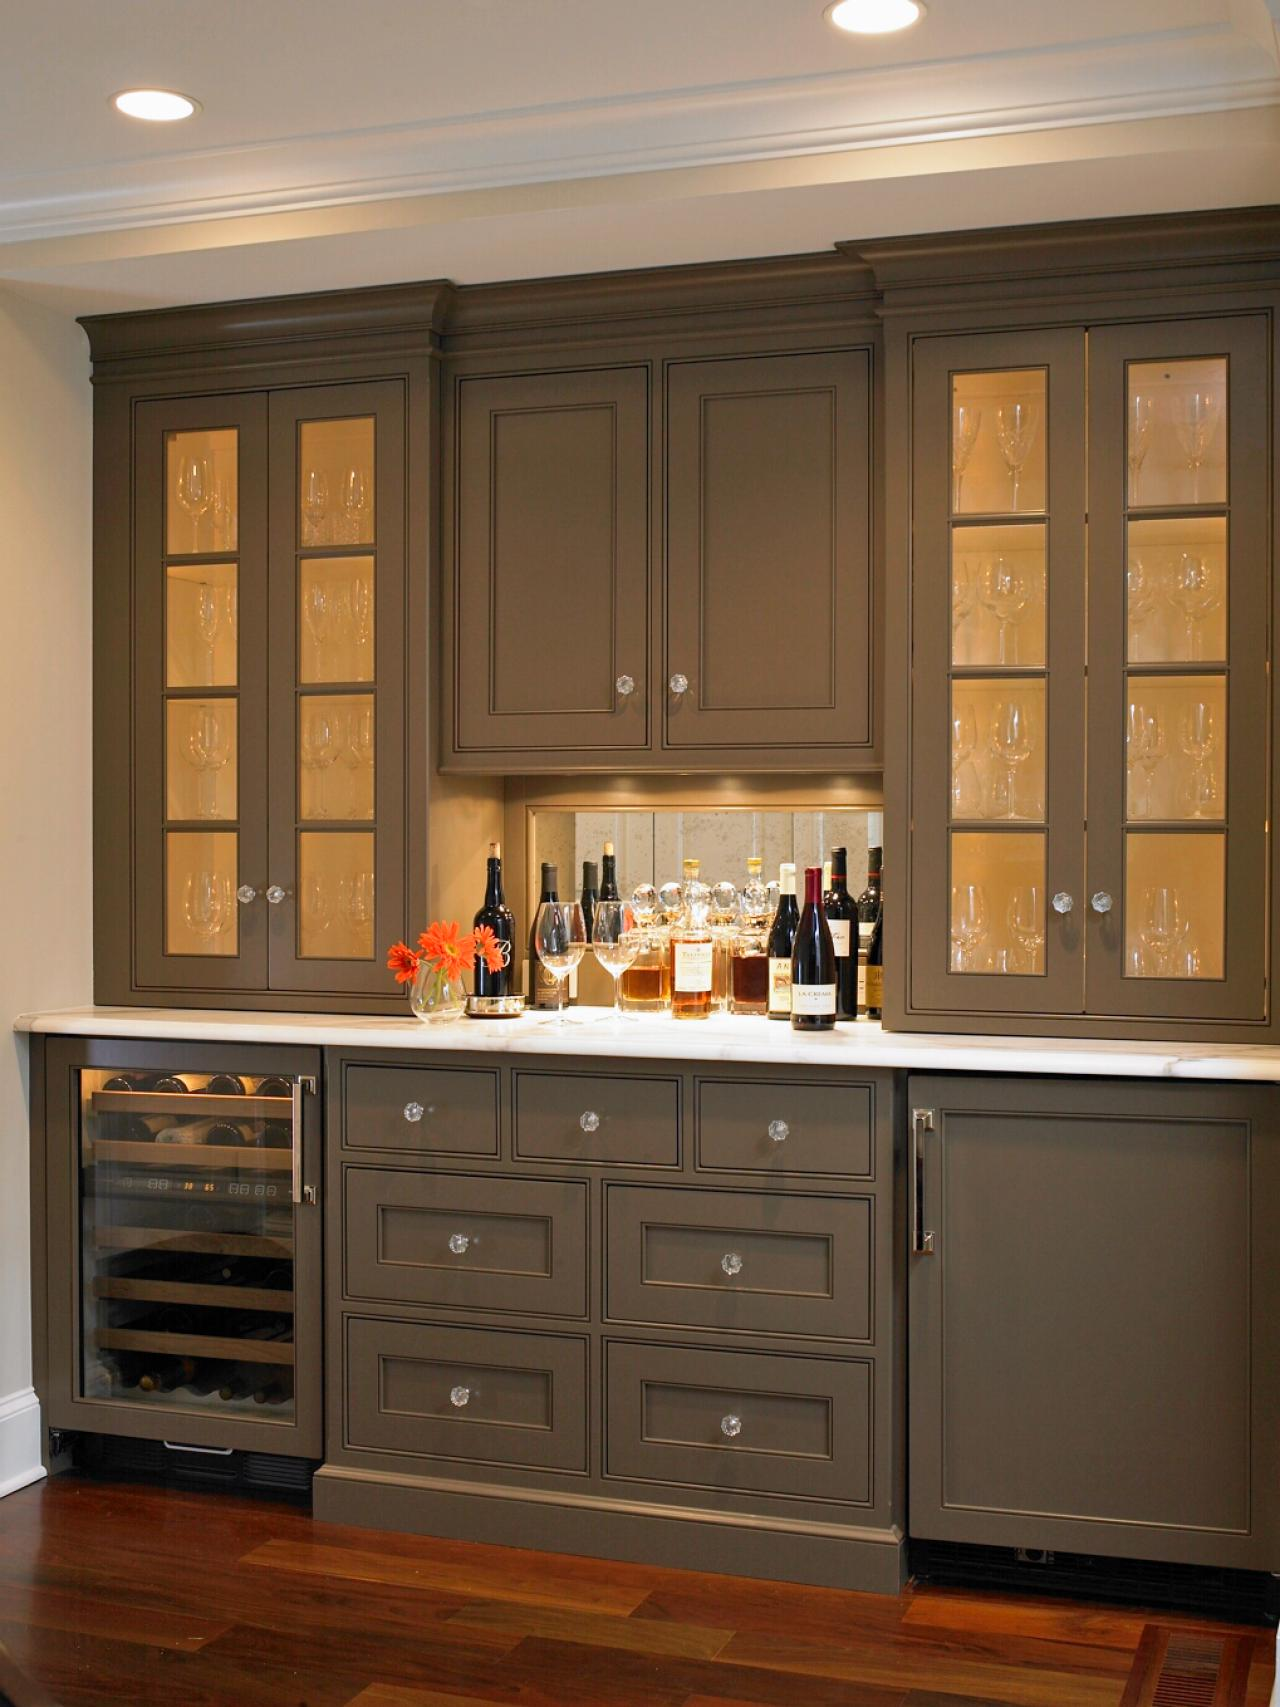 Espresso kitchen cabinets pictures ideas tips from Kitchen cabinet designs